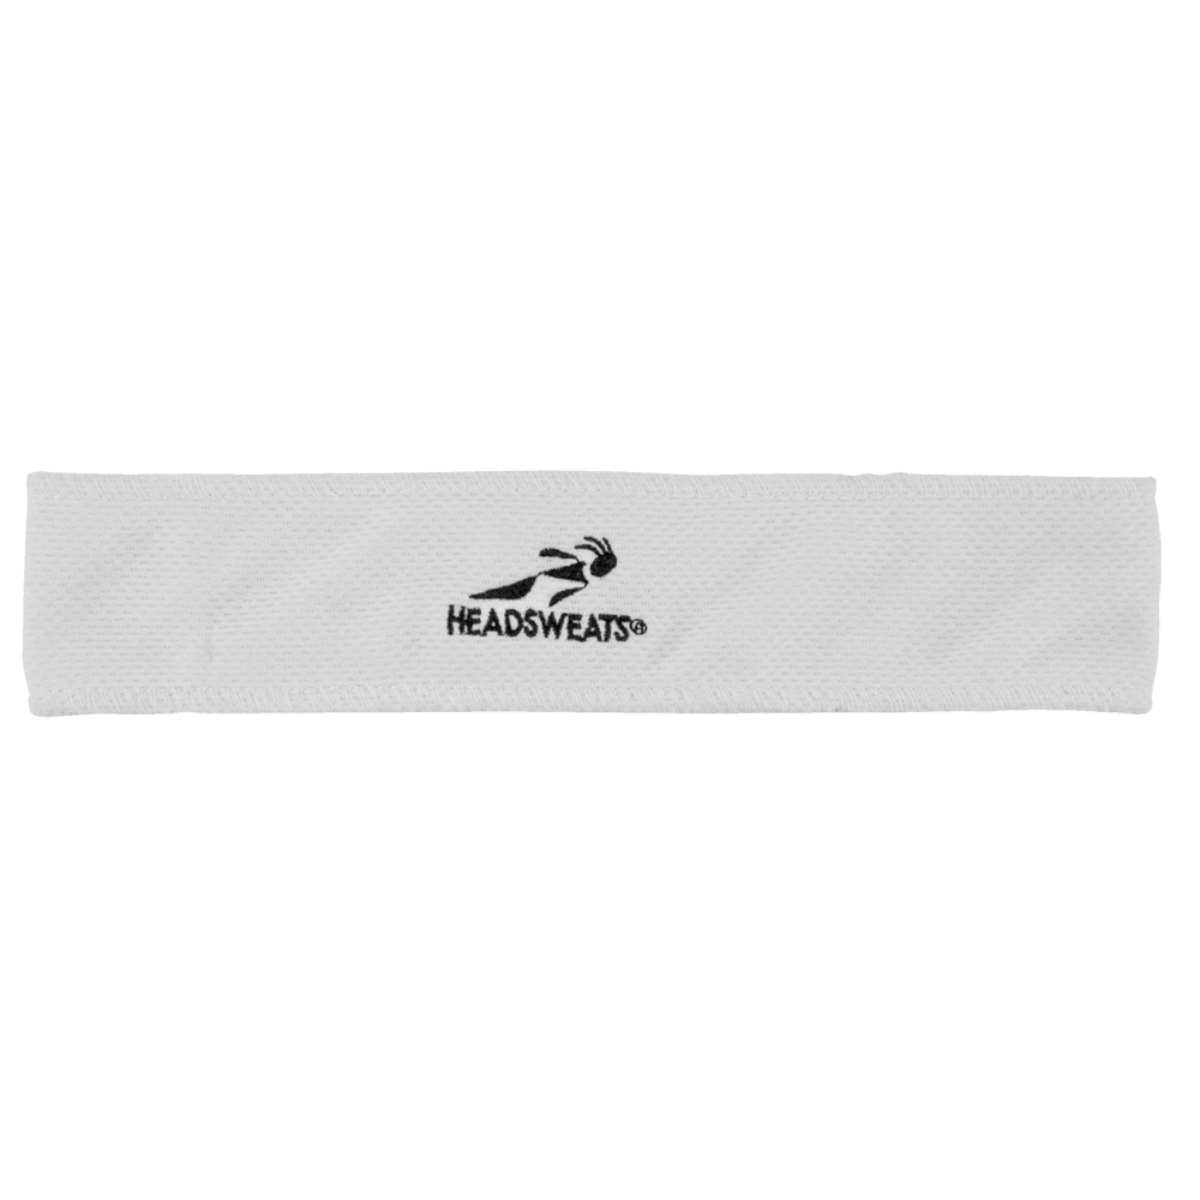 COUVRE TETE HEADSWEATS TOPLESS BLANC